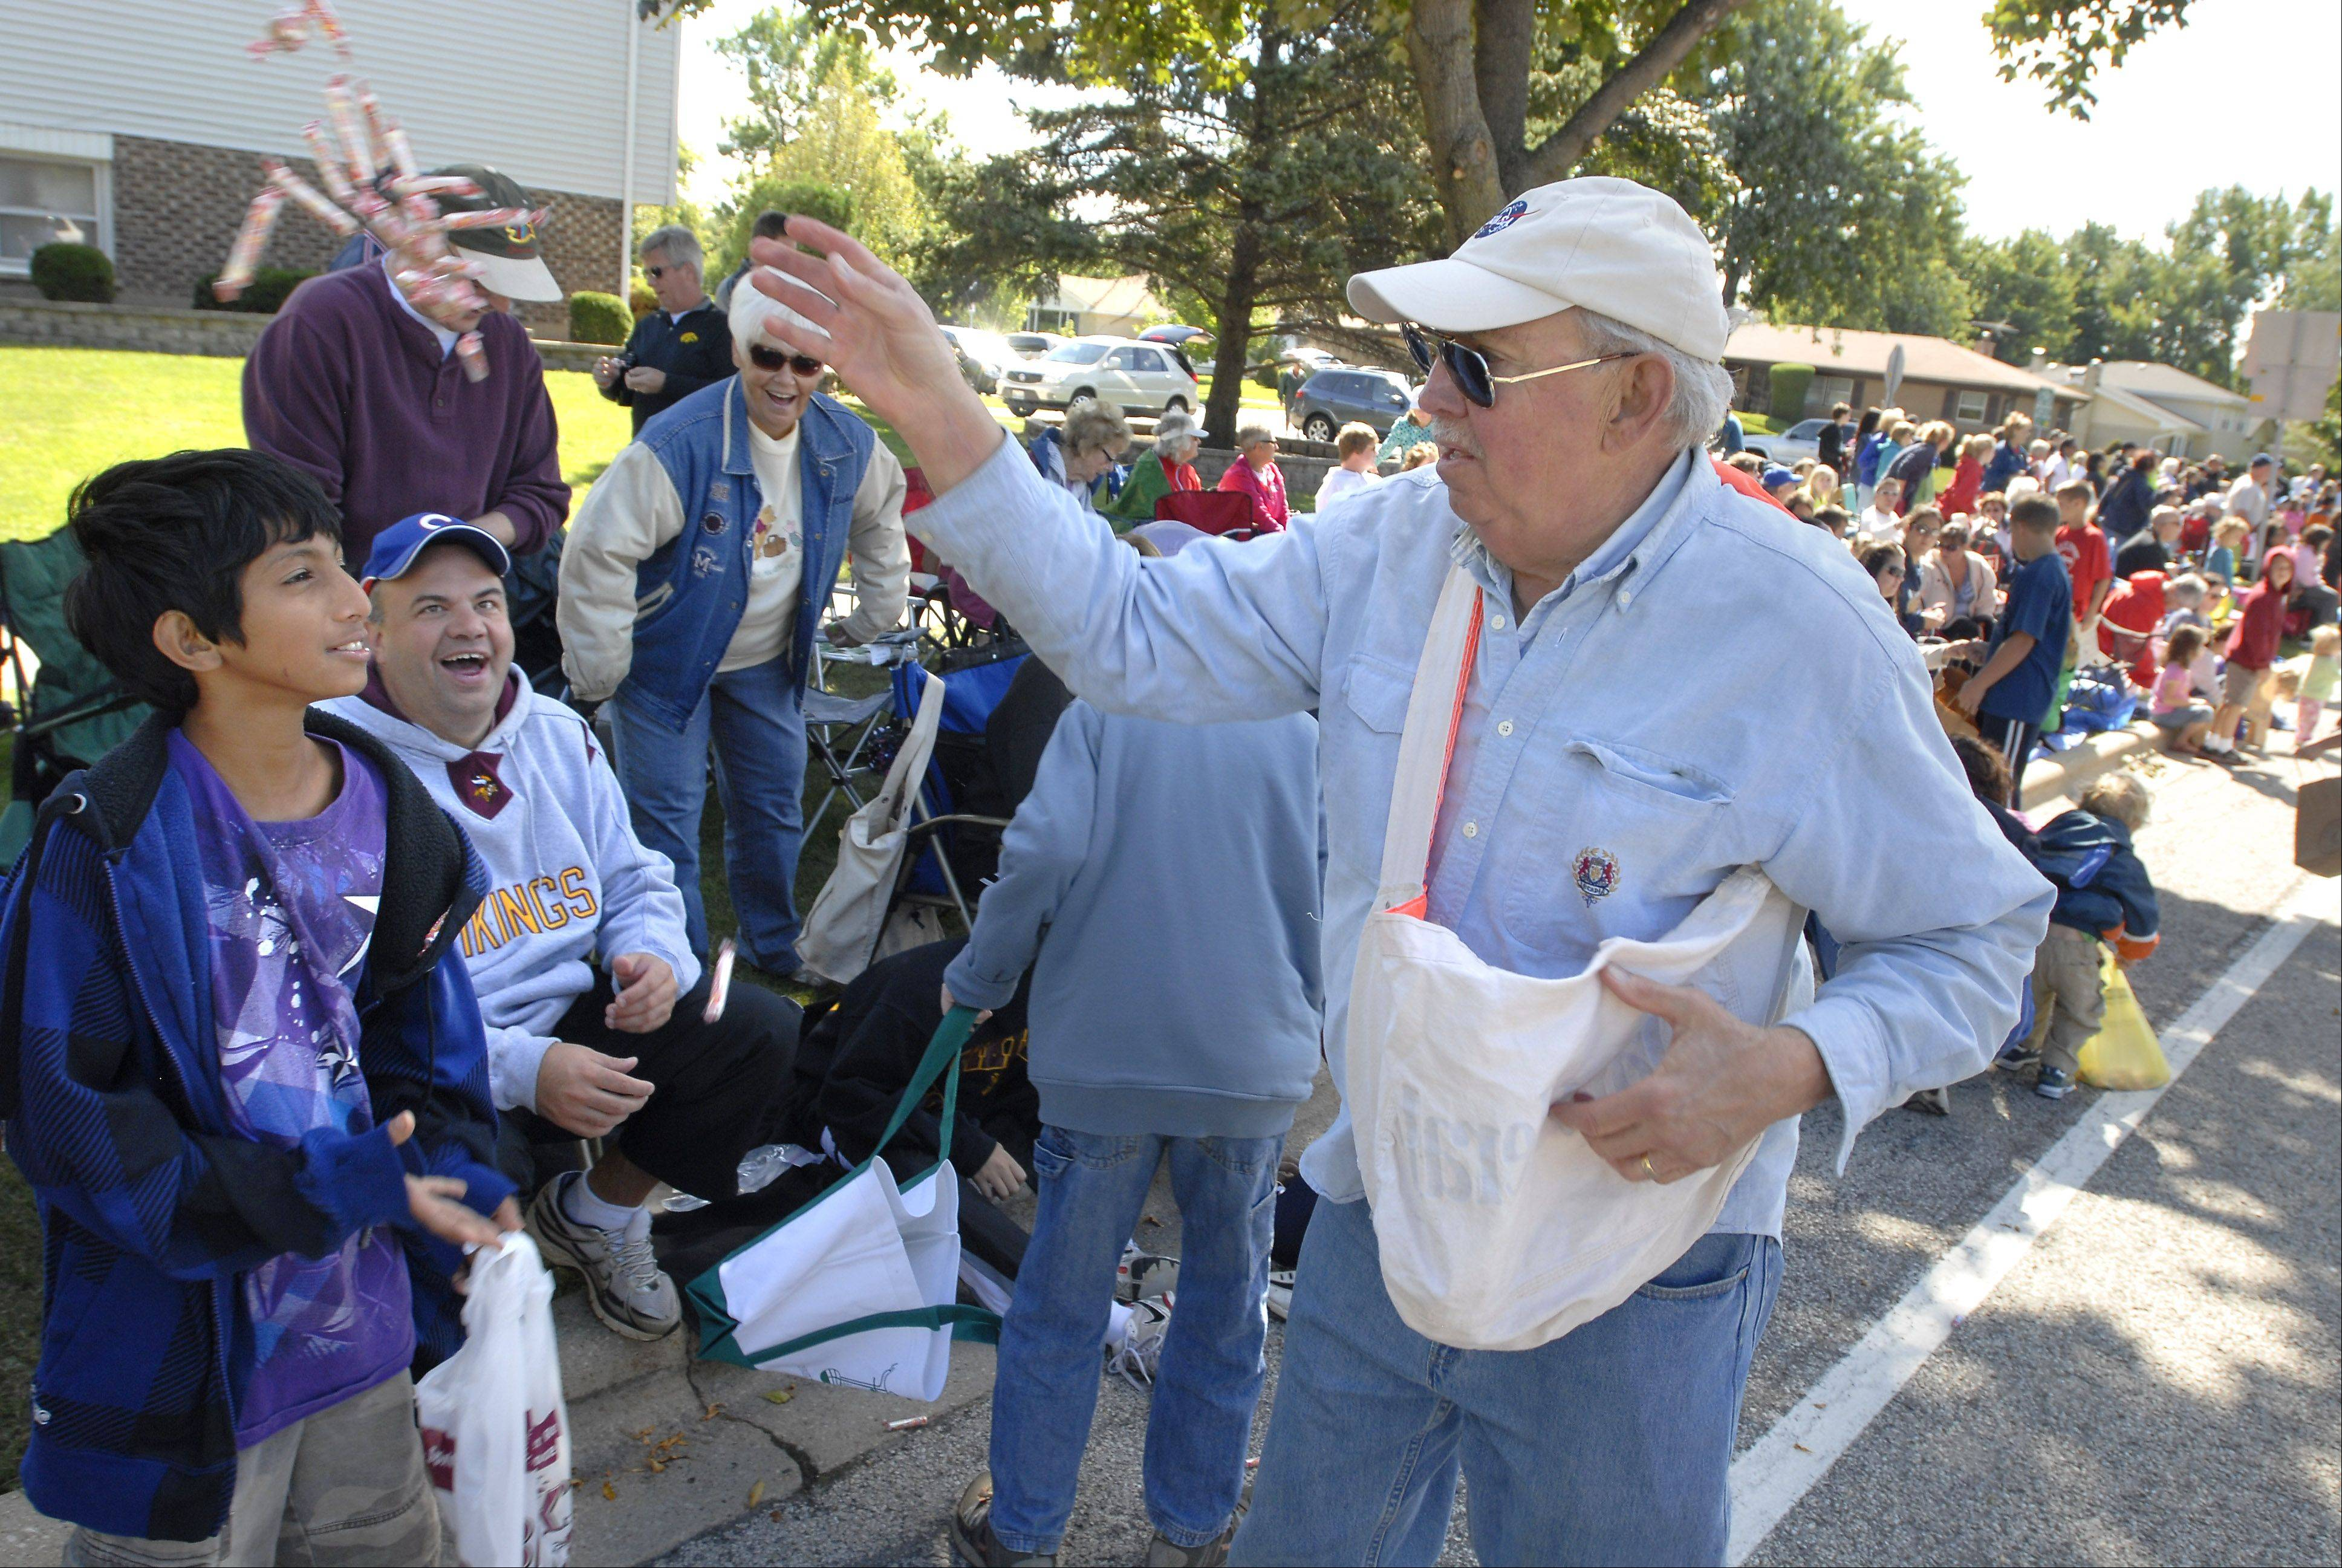 Schaumburg mayor Al Larson tosses candy to viewers along the route Monday at the Septemberfest Parade.